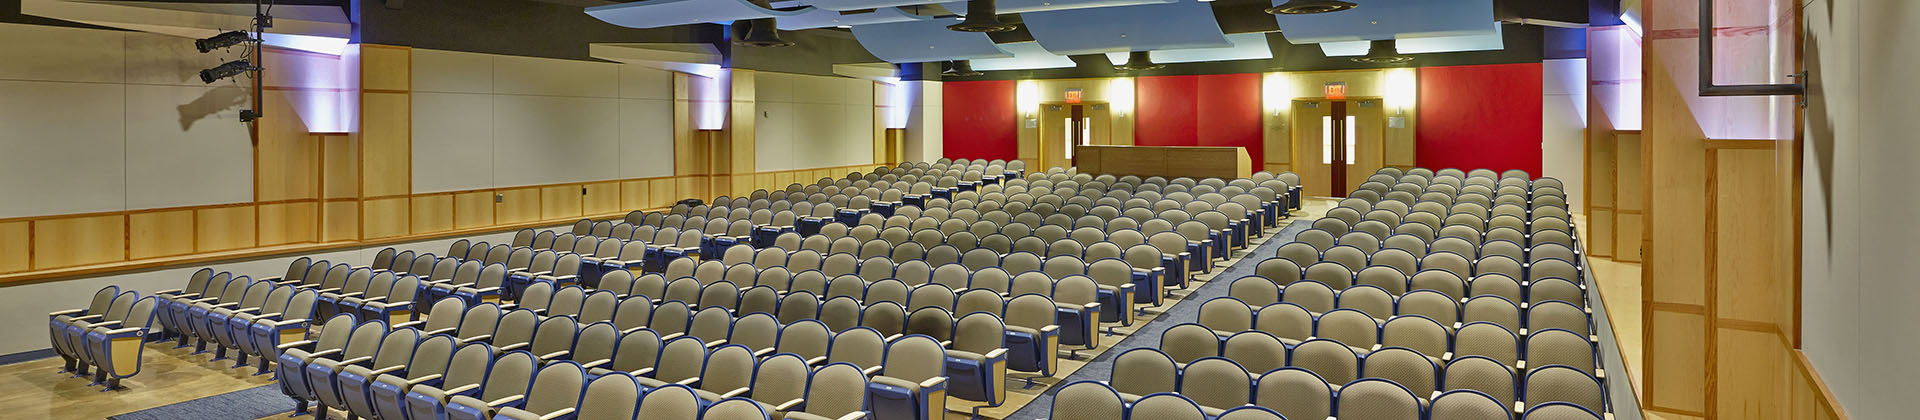 Bishop Dunne Catholic School Auditorium - Dallas, TX